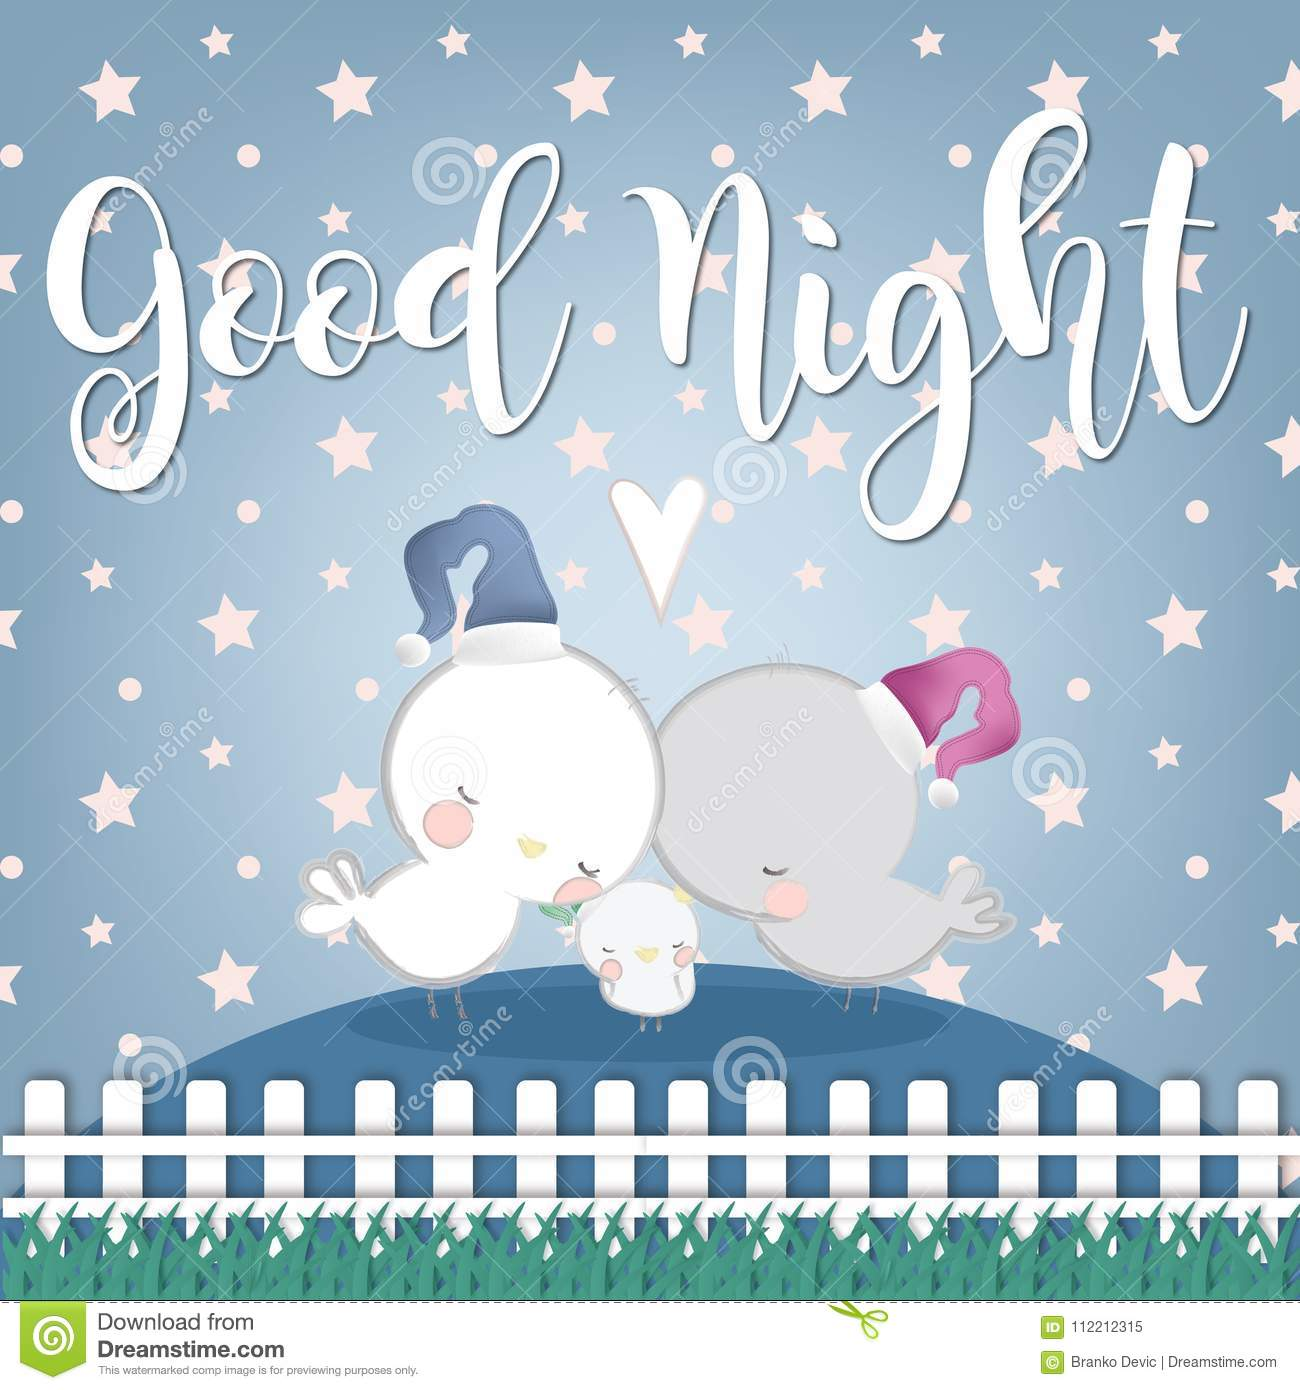 Good Night And Sweet Dreams Illustration Design Stock Illustration